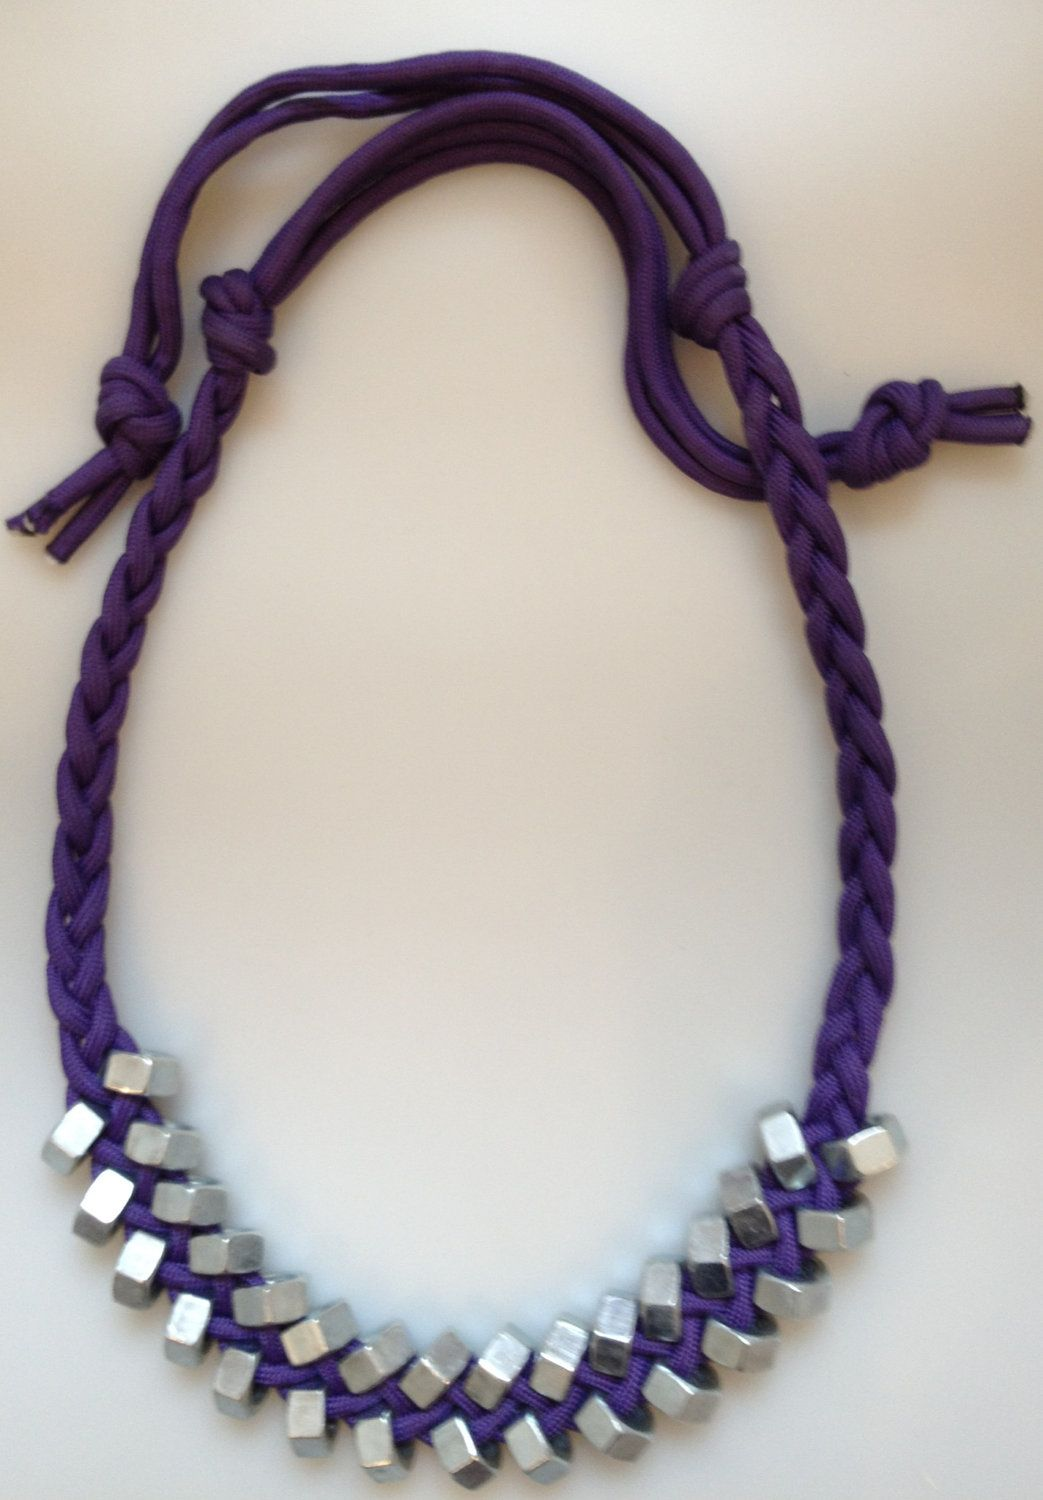 Braided paracord necklace with large silver hex nuts 40 for How to make a paracord lanyard necklace